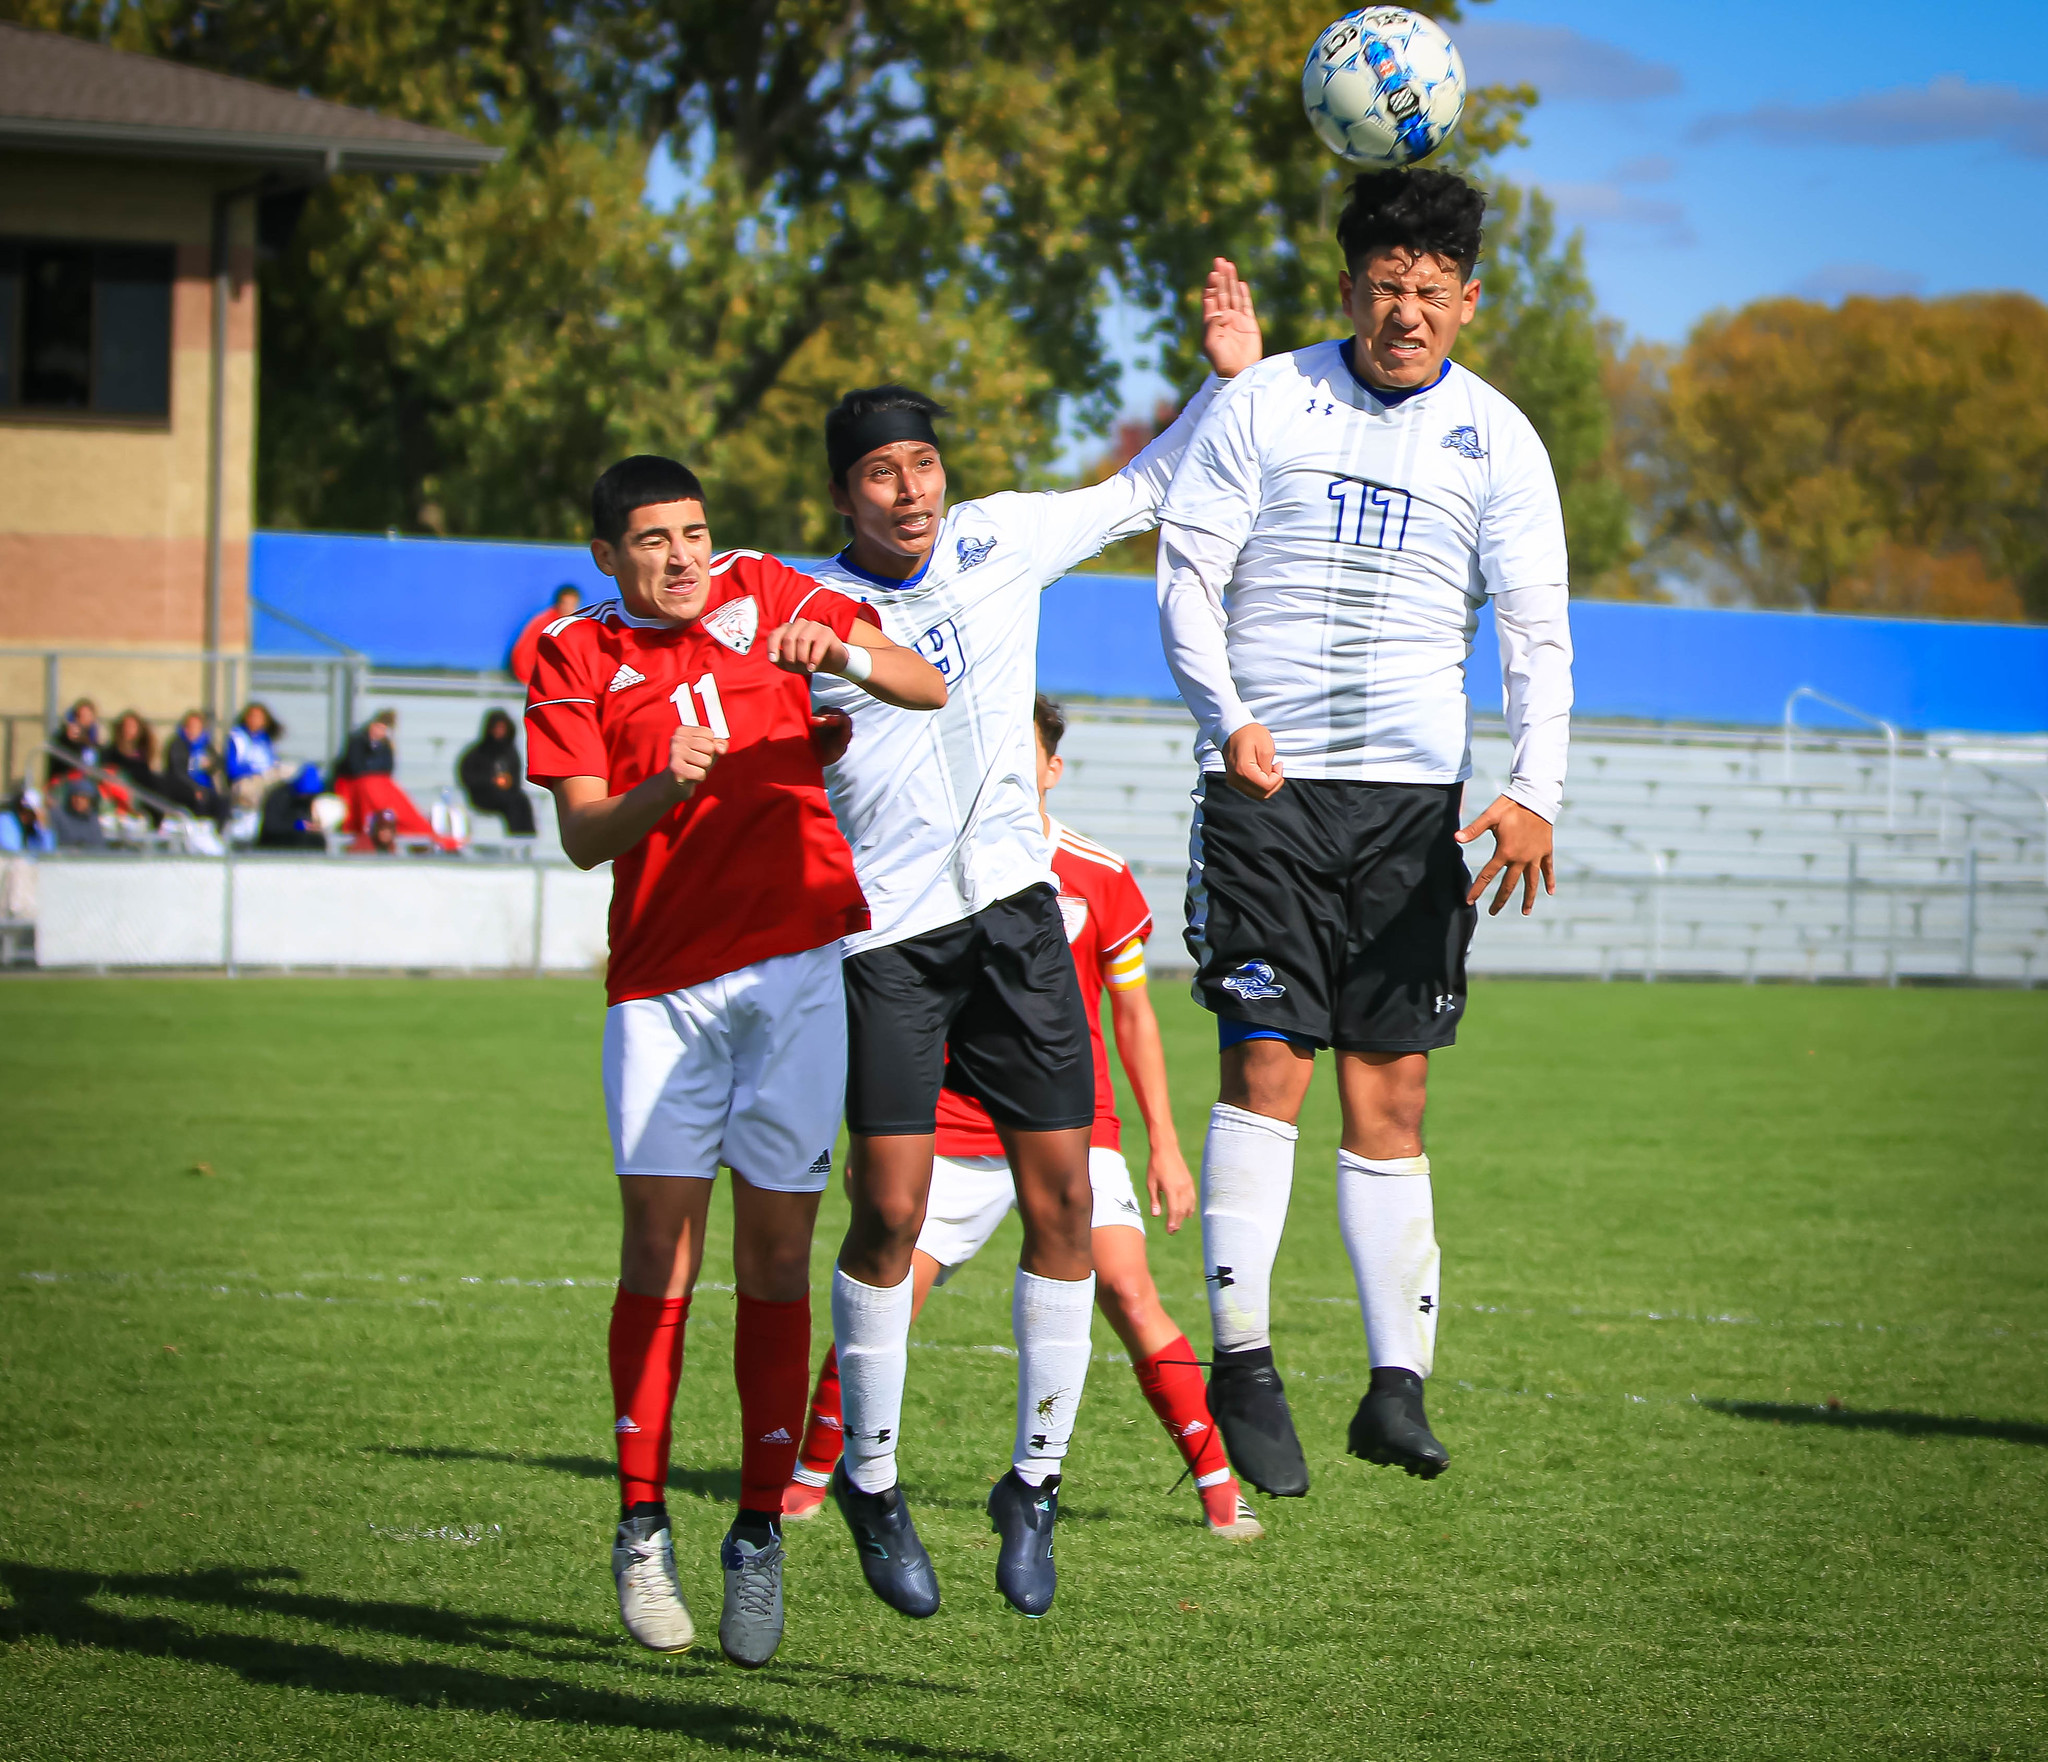 DCTC Blue Knights vs Scott CC Eagles, October 14, 2019